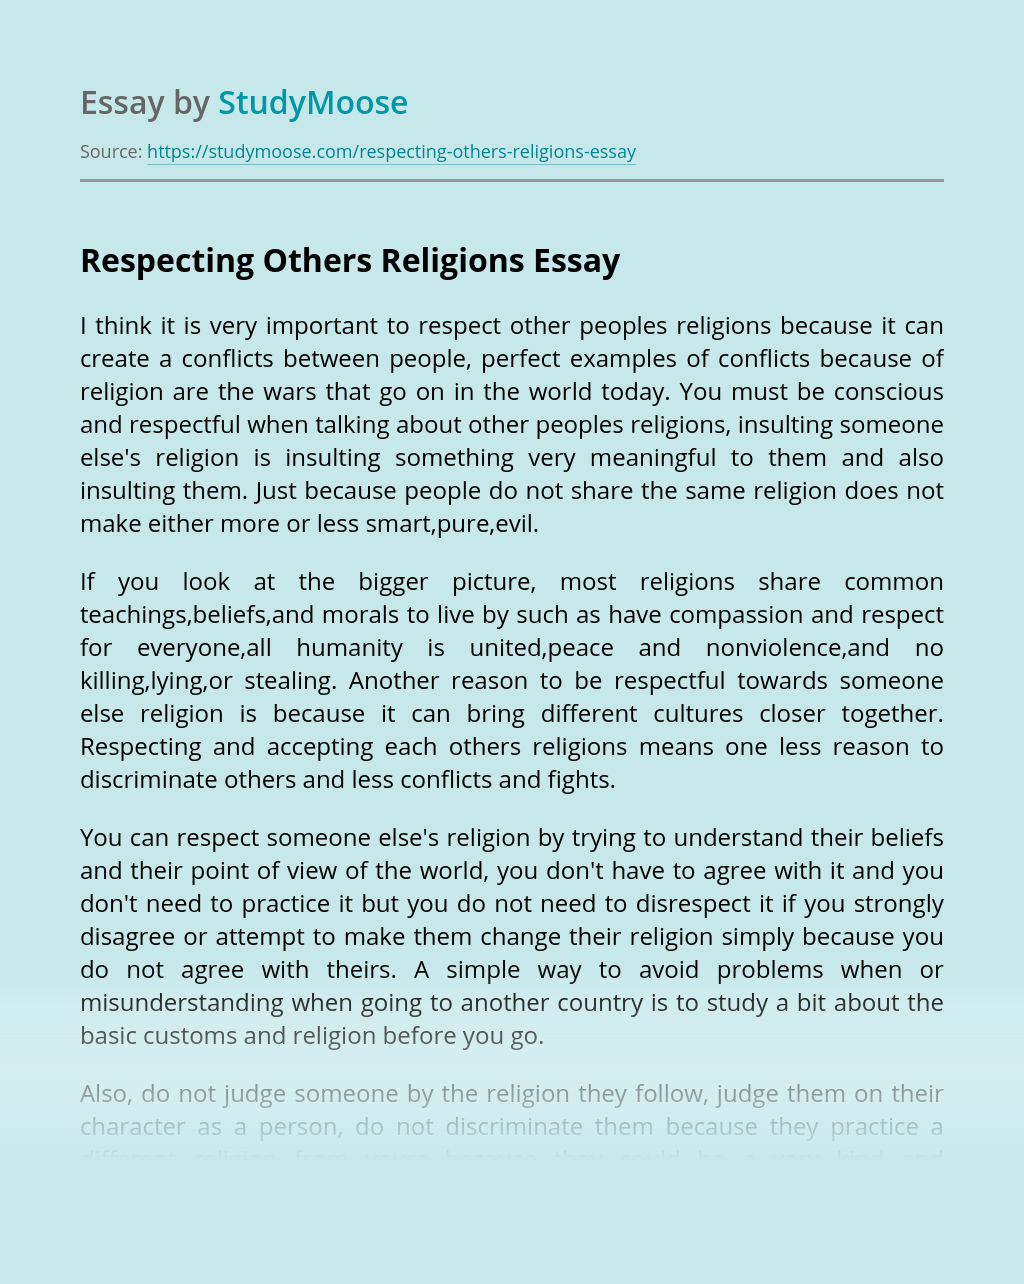 Respecting Others Religions